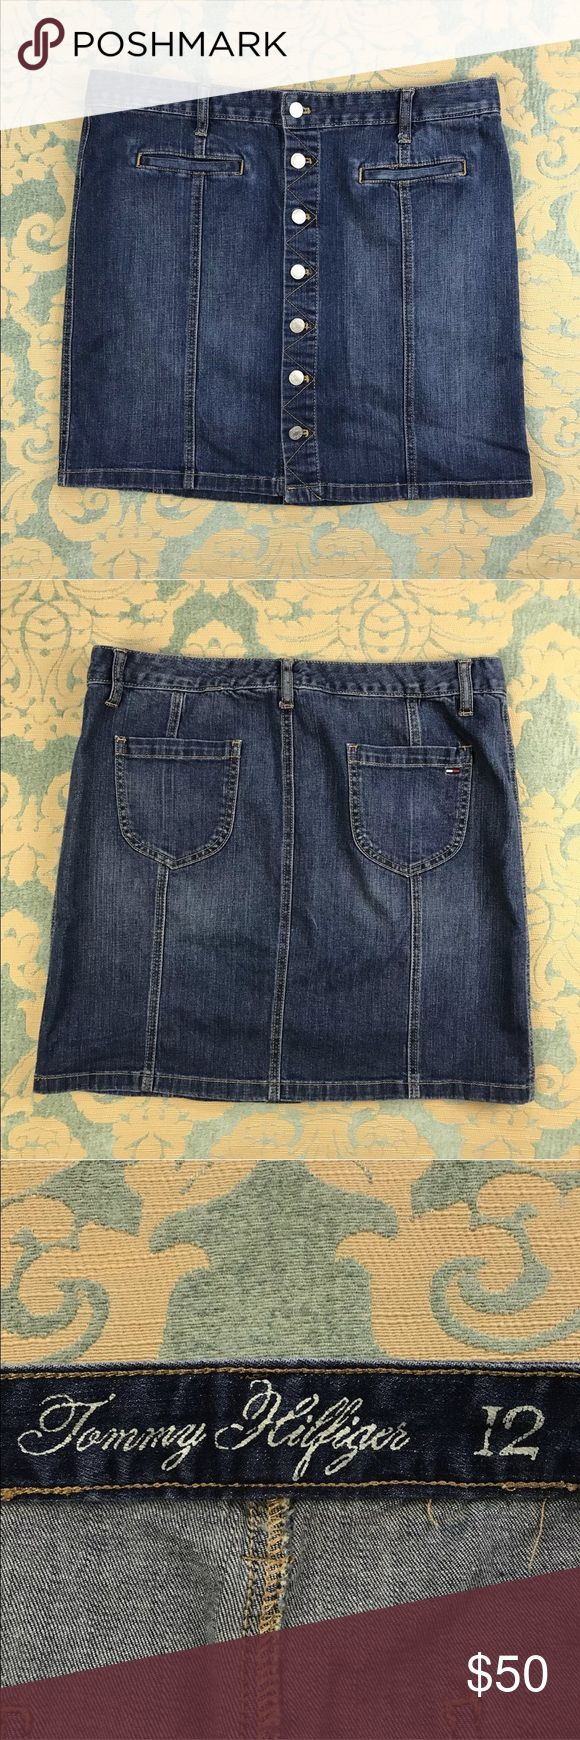 "Tommy Hilfiger Blue Jean Skirt 🦋 18"" Inseam Tommy Hilfiger Blue Jean Skirt  Women's Size: 12  Gently used, material tag missing.  Measurements lying flat: Waist 18"", Hips 21"", Length 18"".  Please, review pictures. You will get the item shown. Smoke & pet free home. Tommy Hilfiger Skirts Mini"